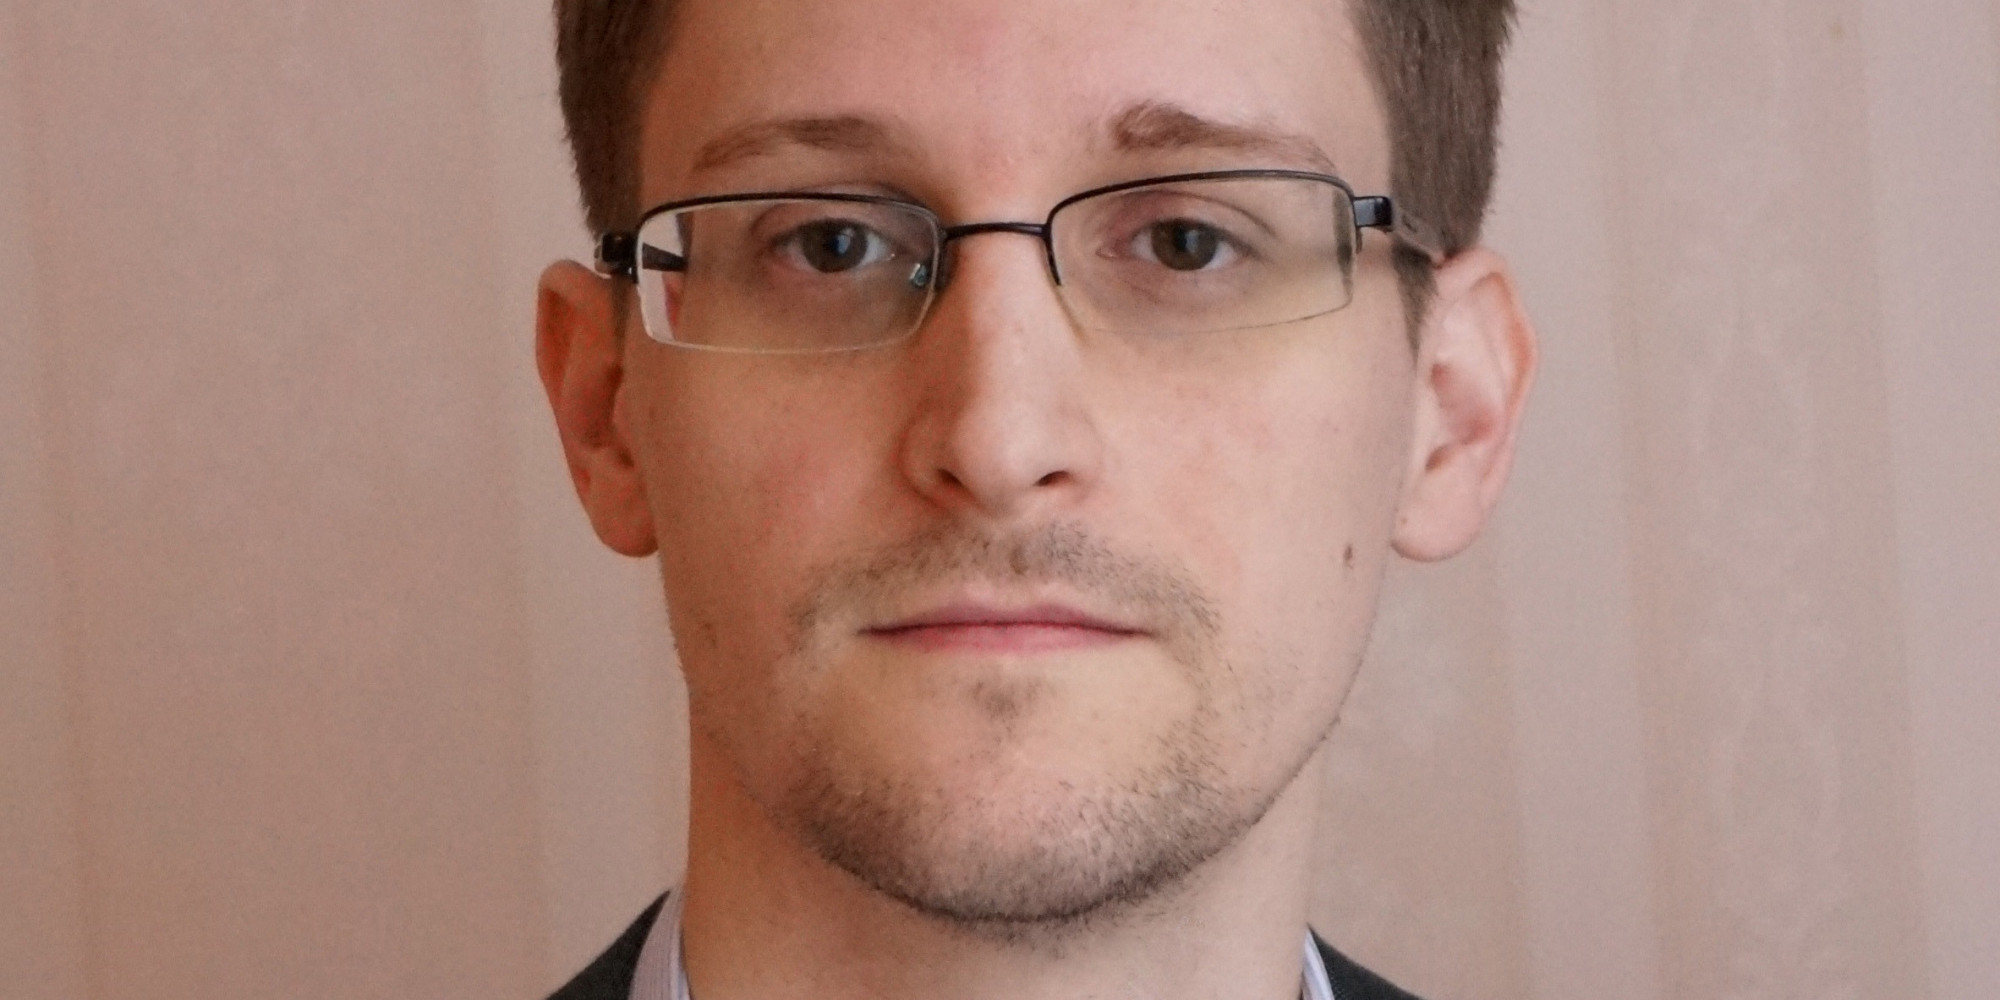 Edward Snowden says Canadian spying has weakest oversight in Western world - o-EDWARD-SNOWDEN-facebook